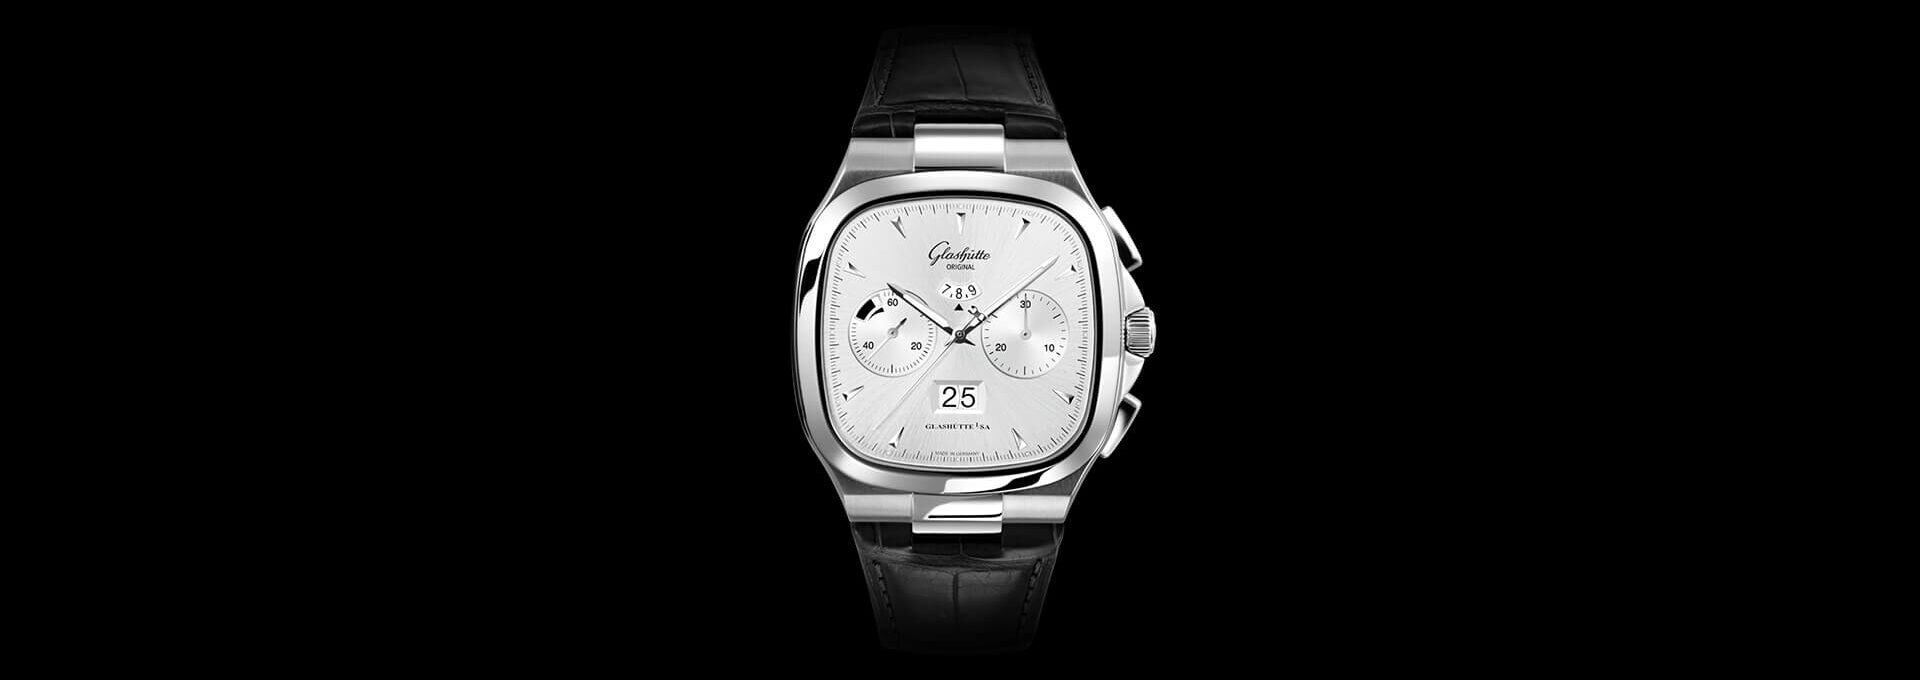 Glashuette_Original-W13702020230-Detail-1